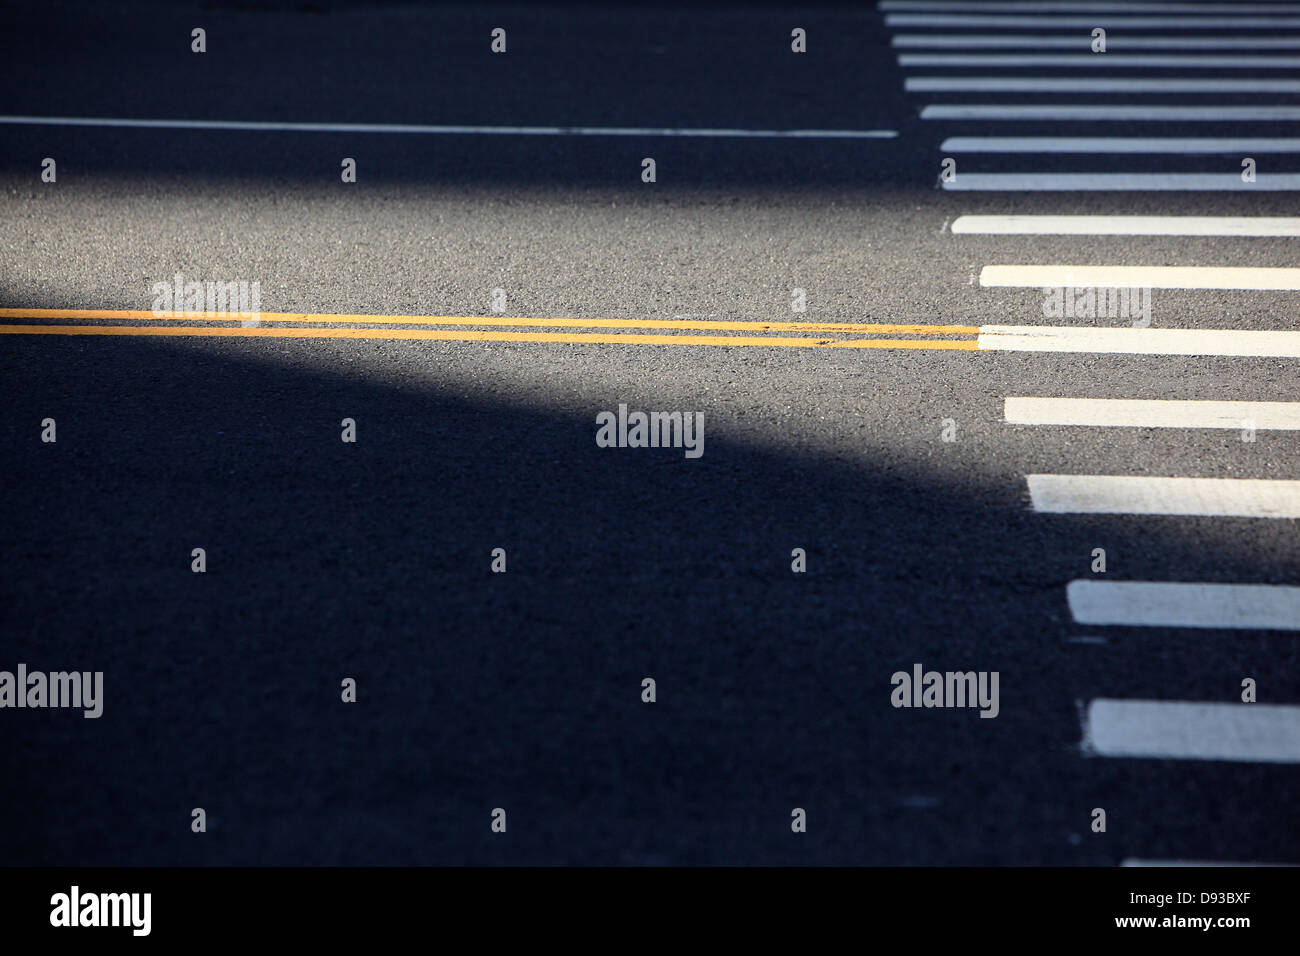 crosswalk - Stock Image